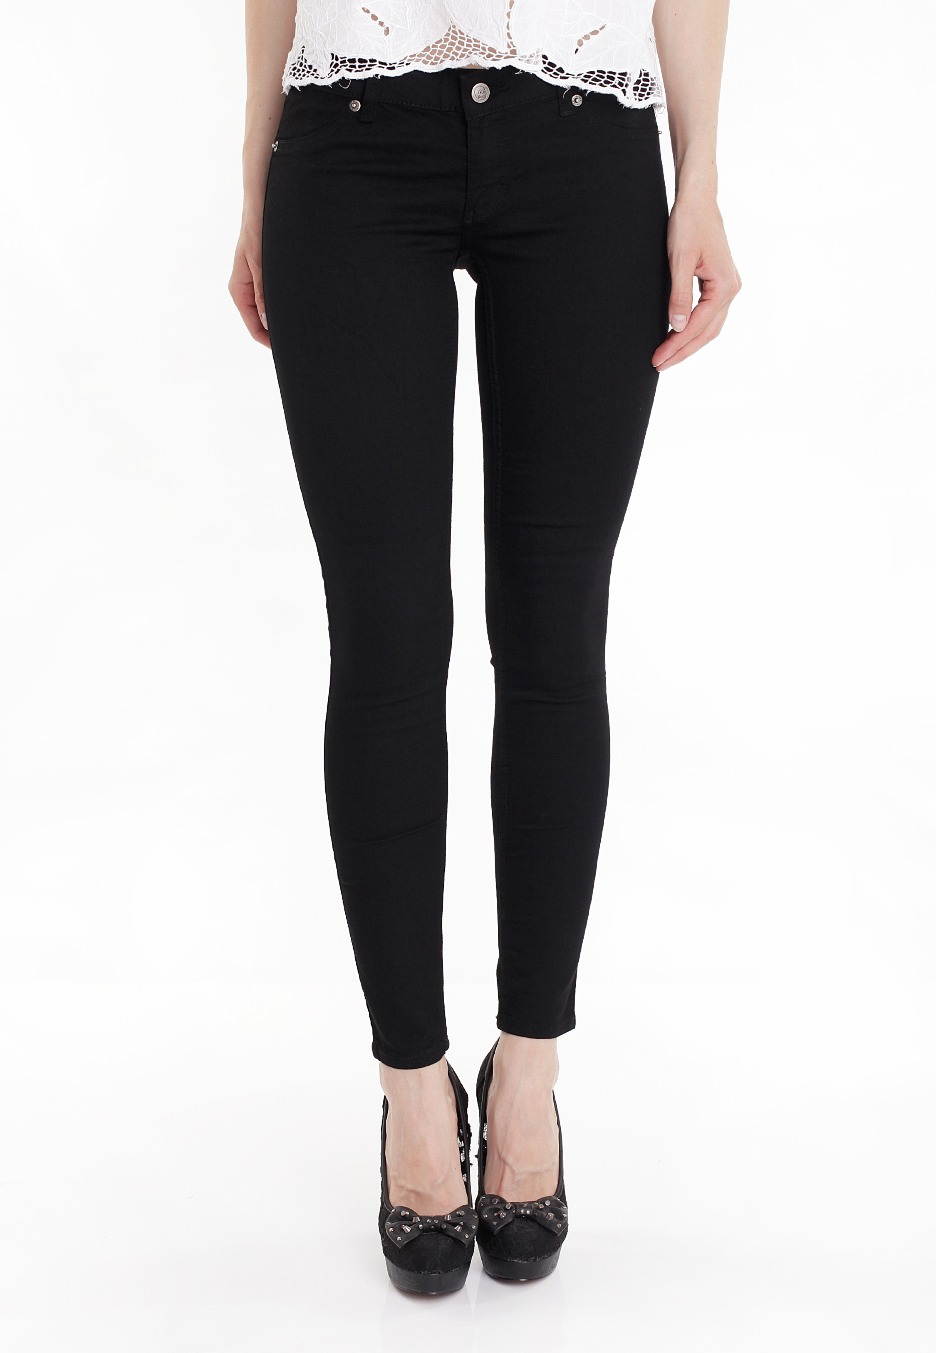 Find Women's Jeggings, Juniors Jeggings and Girls Jeggings at Macy's. Macy's Presents: The Edit - A curated mix of fashion and inspiration Check It Out Free Shipping with $75 purchase + Free Store Pickup.